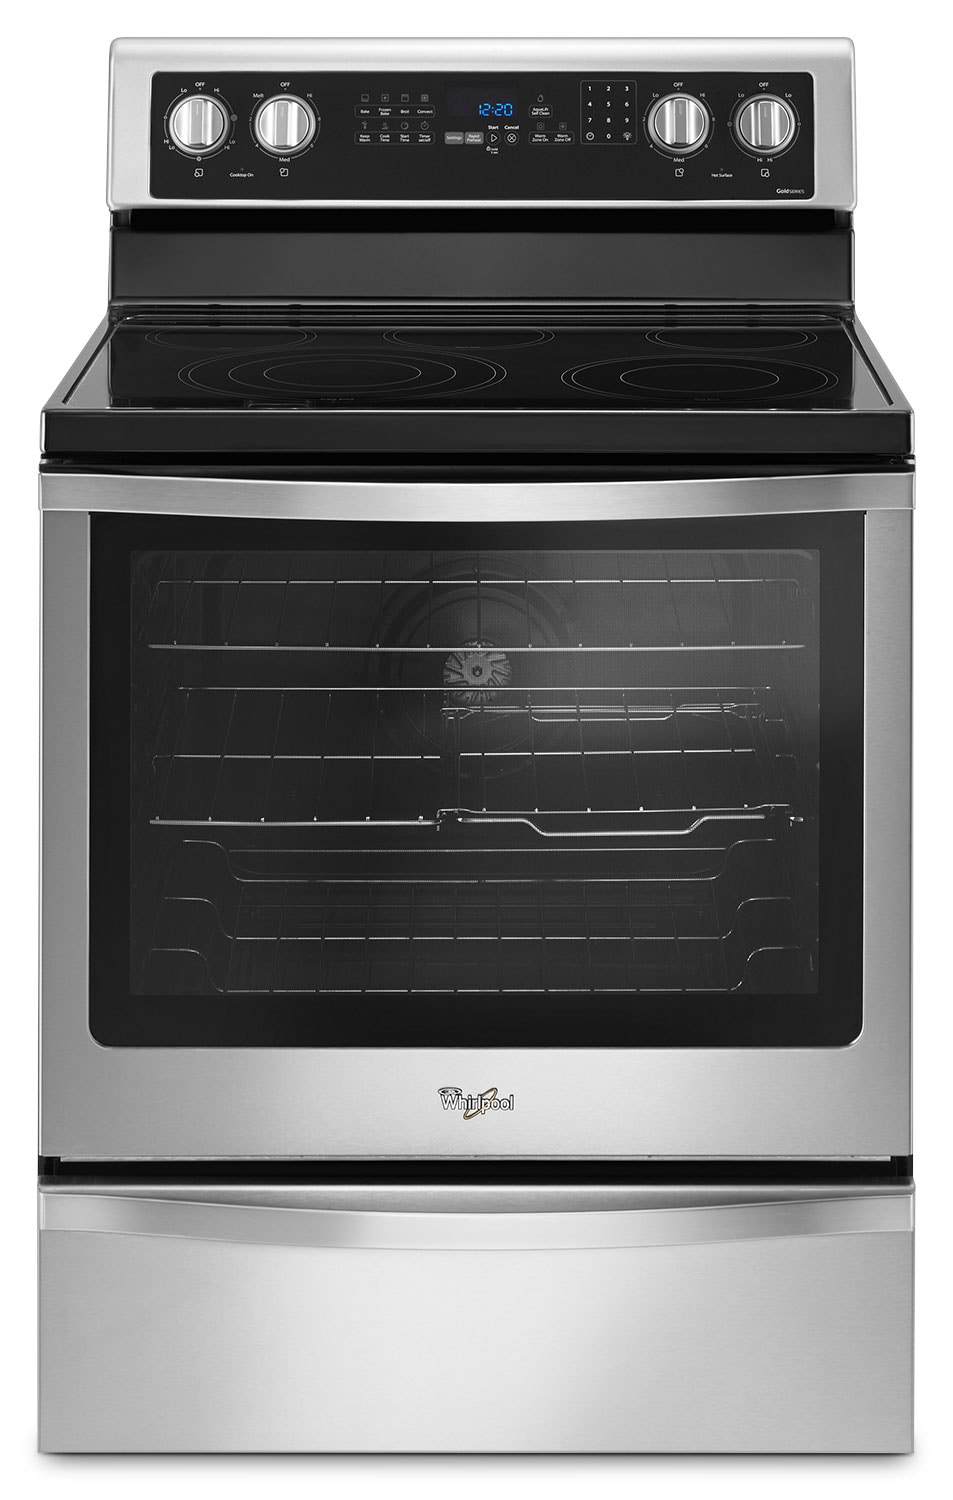 Whirlpool 6.4 Cu. Ft. Freestanding Electric Range – YWFE745H0FS